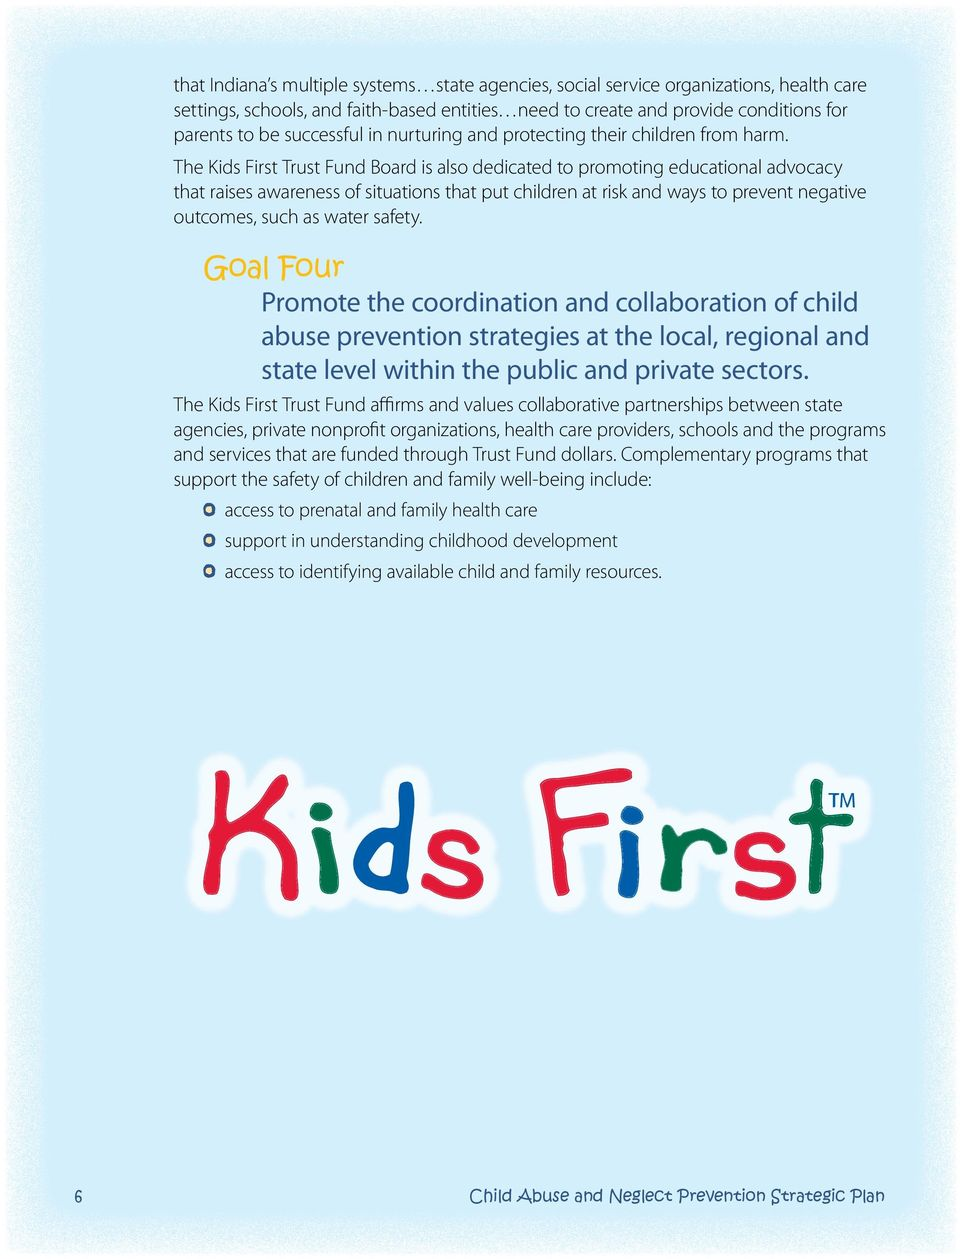 The Kids First Trust Fund Board is also dedicated to promoting educational advocacy that raises awareness of situations that put children at risk and ways to prevent negative outcomes, such as water